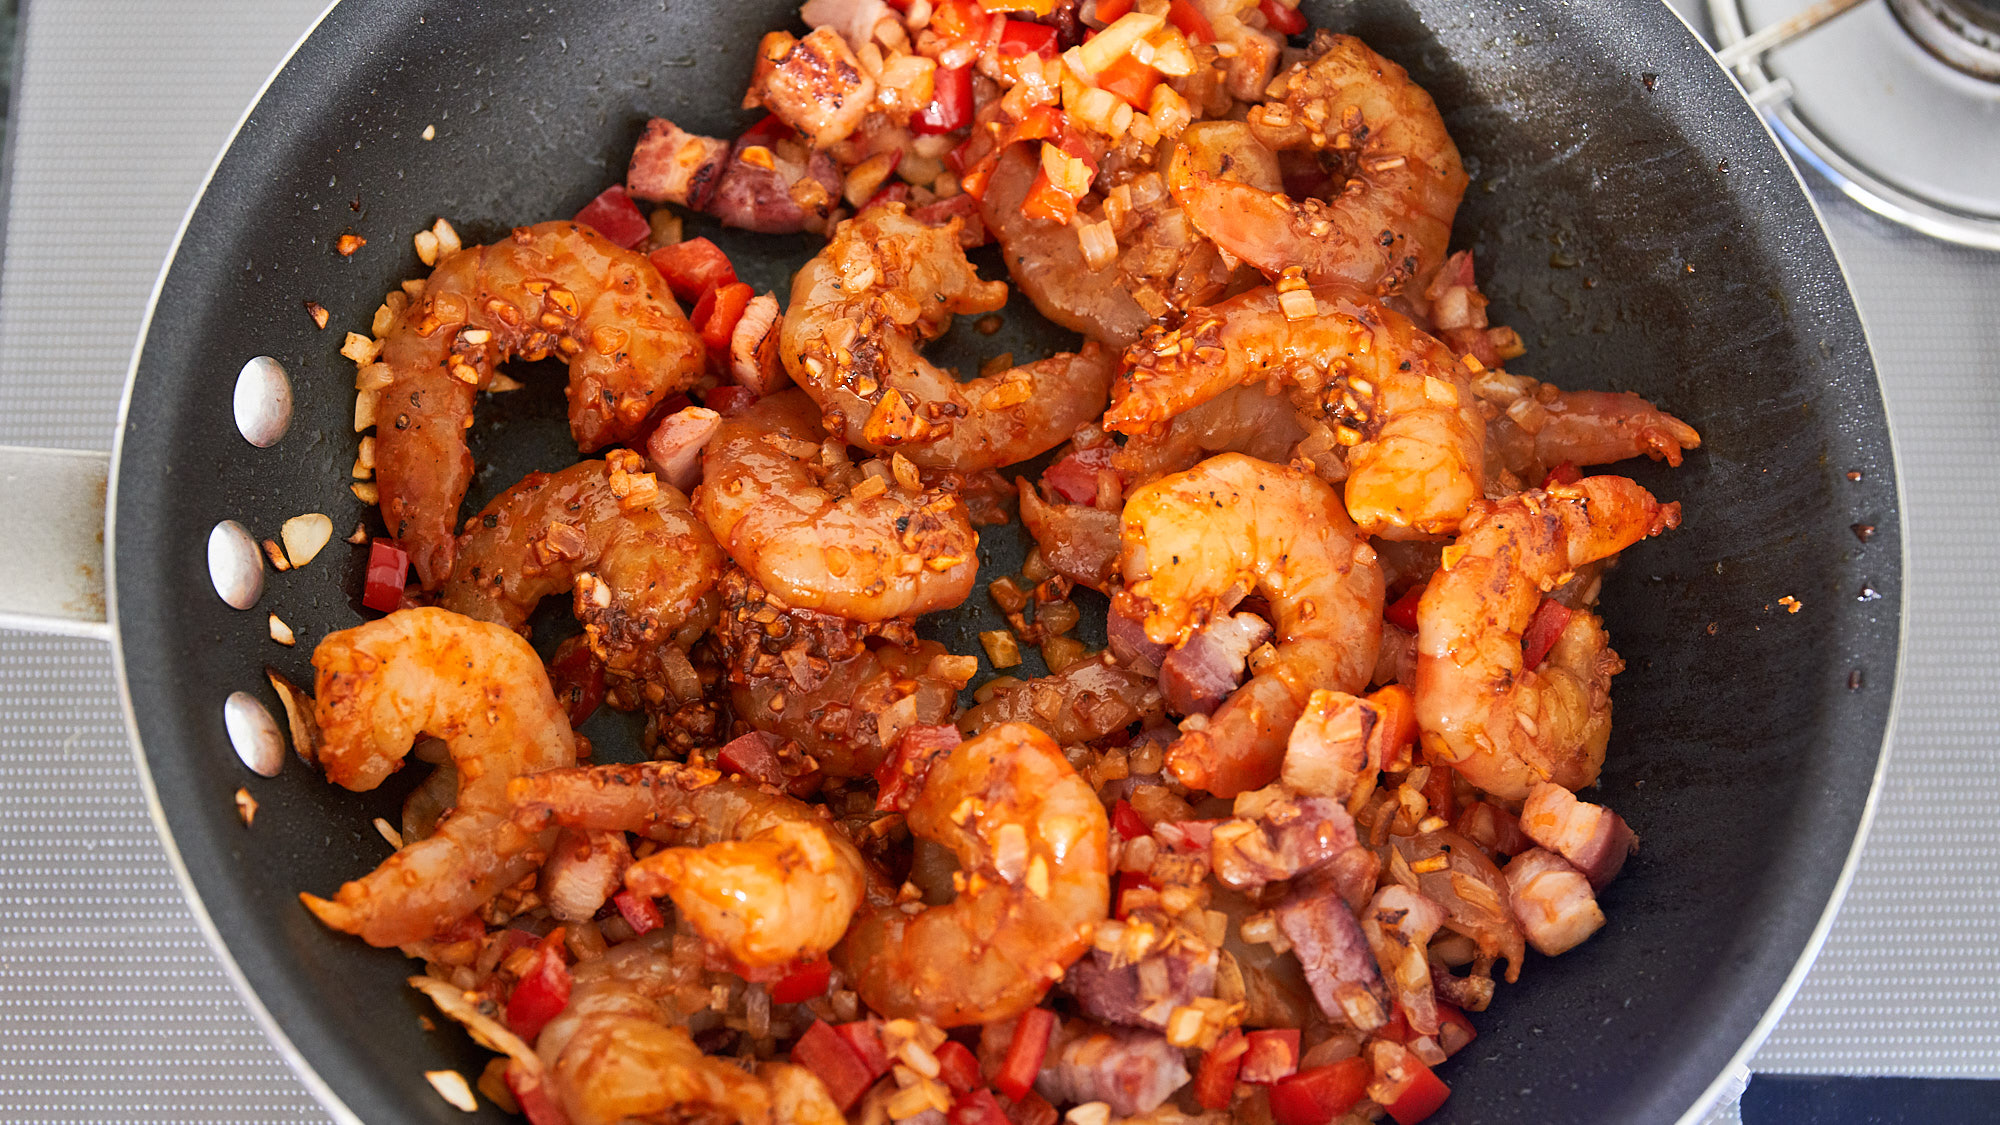 Finally add the shrimp and stir-fry until they're just cooked through.